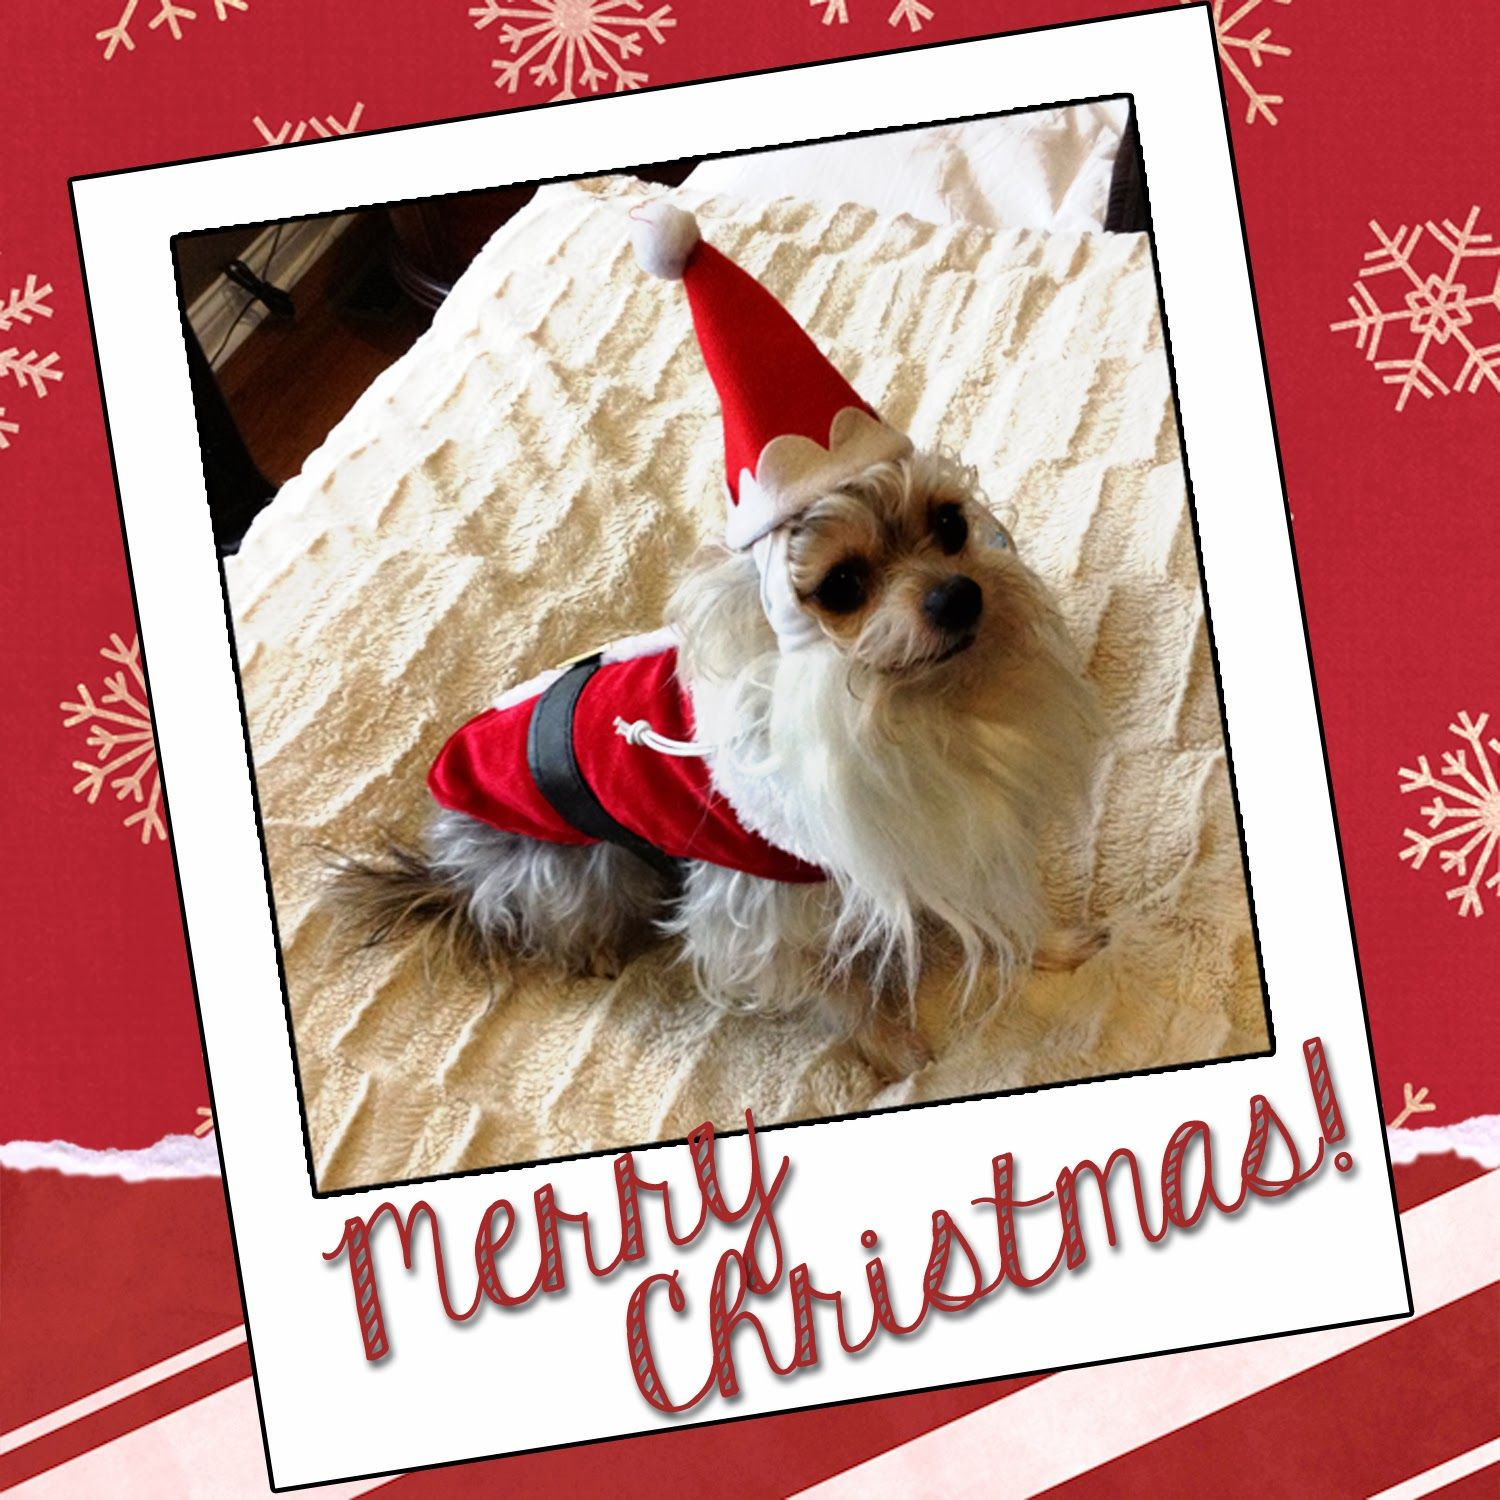 Loki in Santa costume and ready for #Christmas.